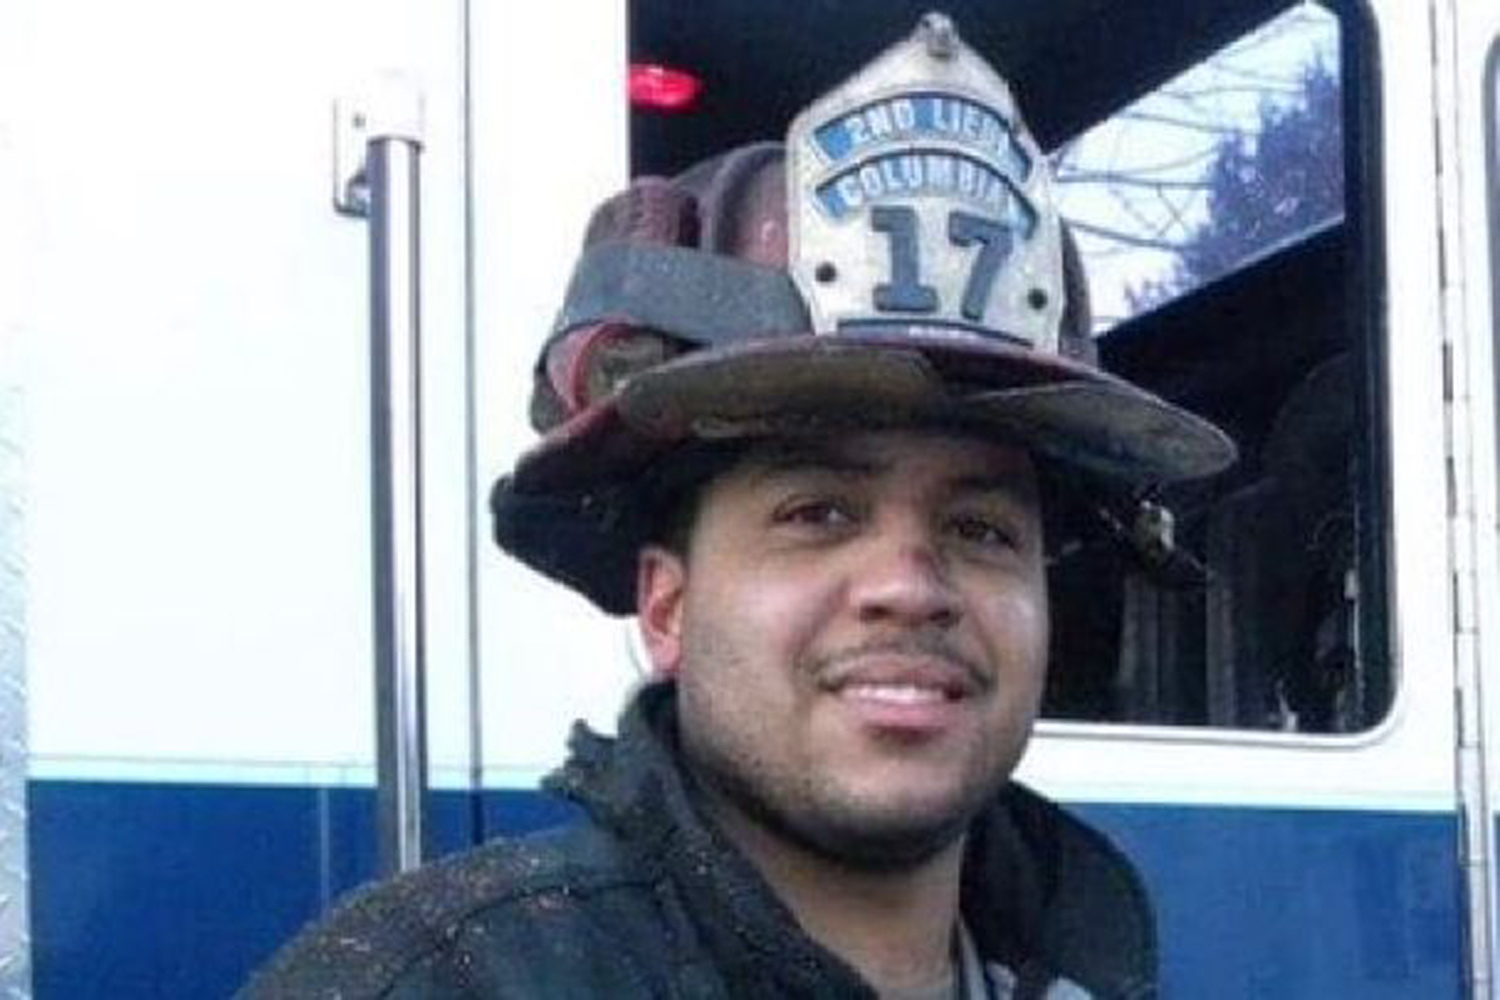 'Dedicated' New York Firefighter Dies in Blaze Just 1 Day Before His Son's 6th Birthday